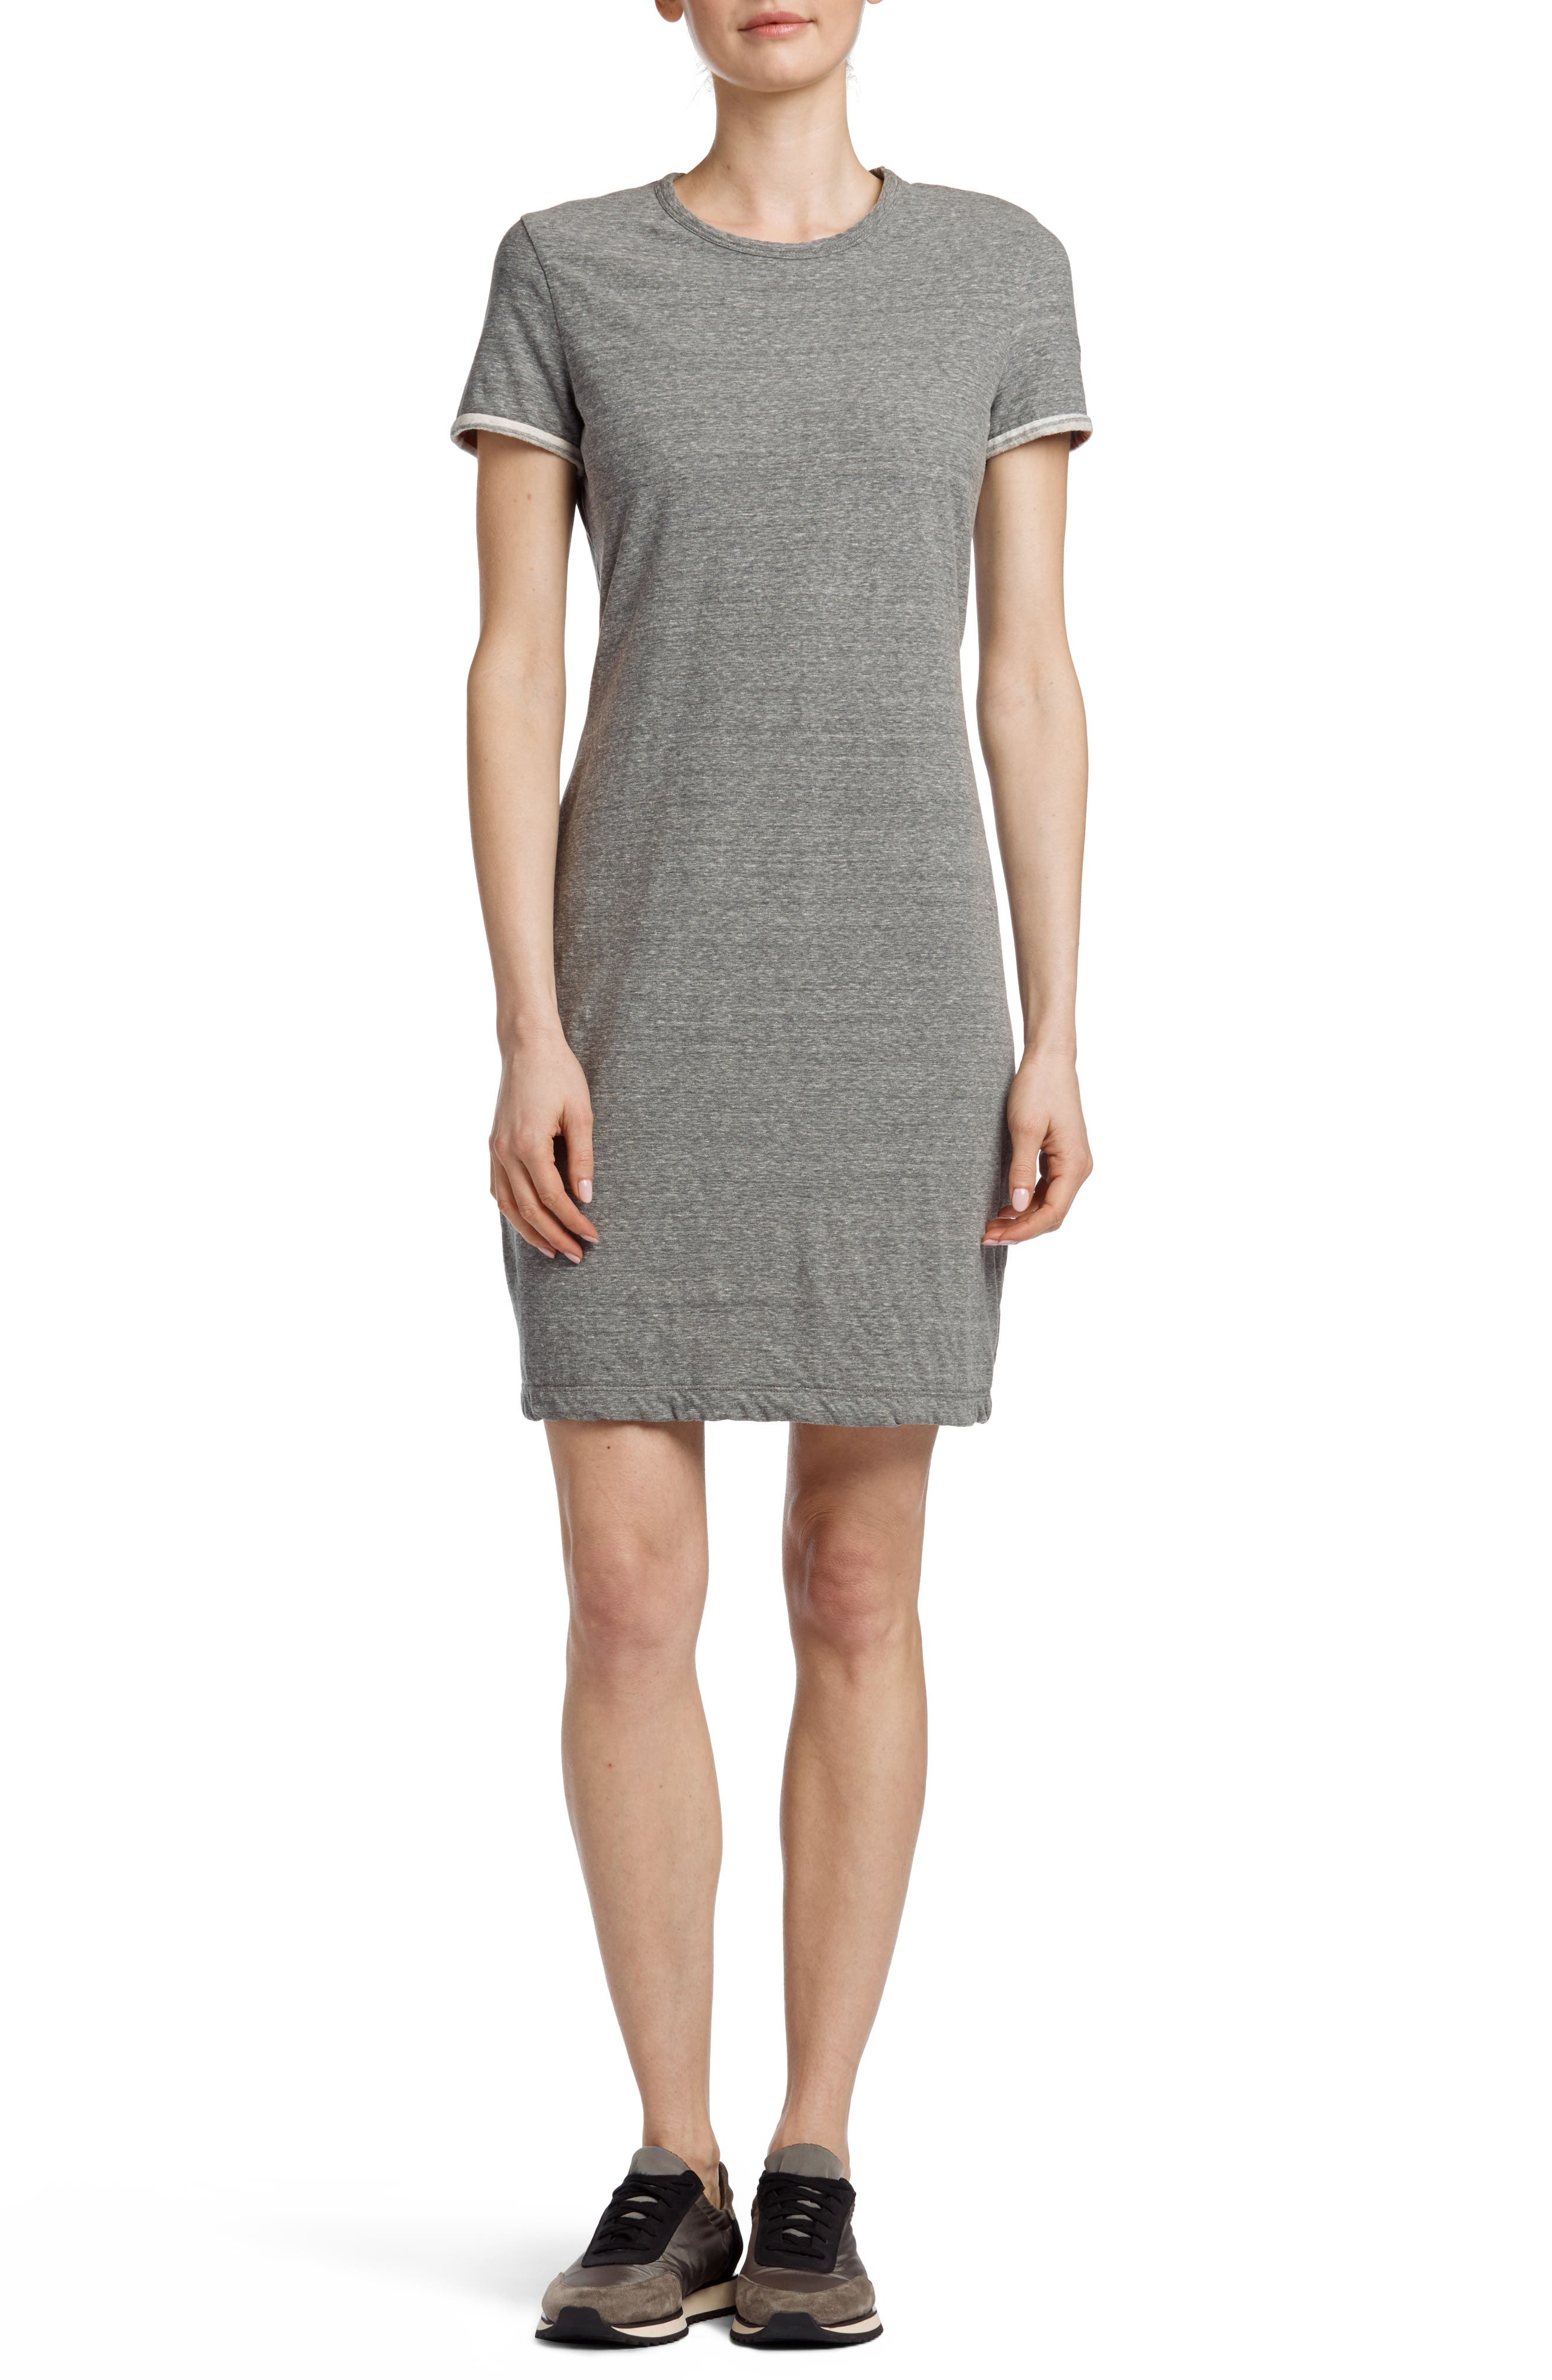 James Perse Vintage Cotton T-Shirt Dress